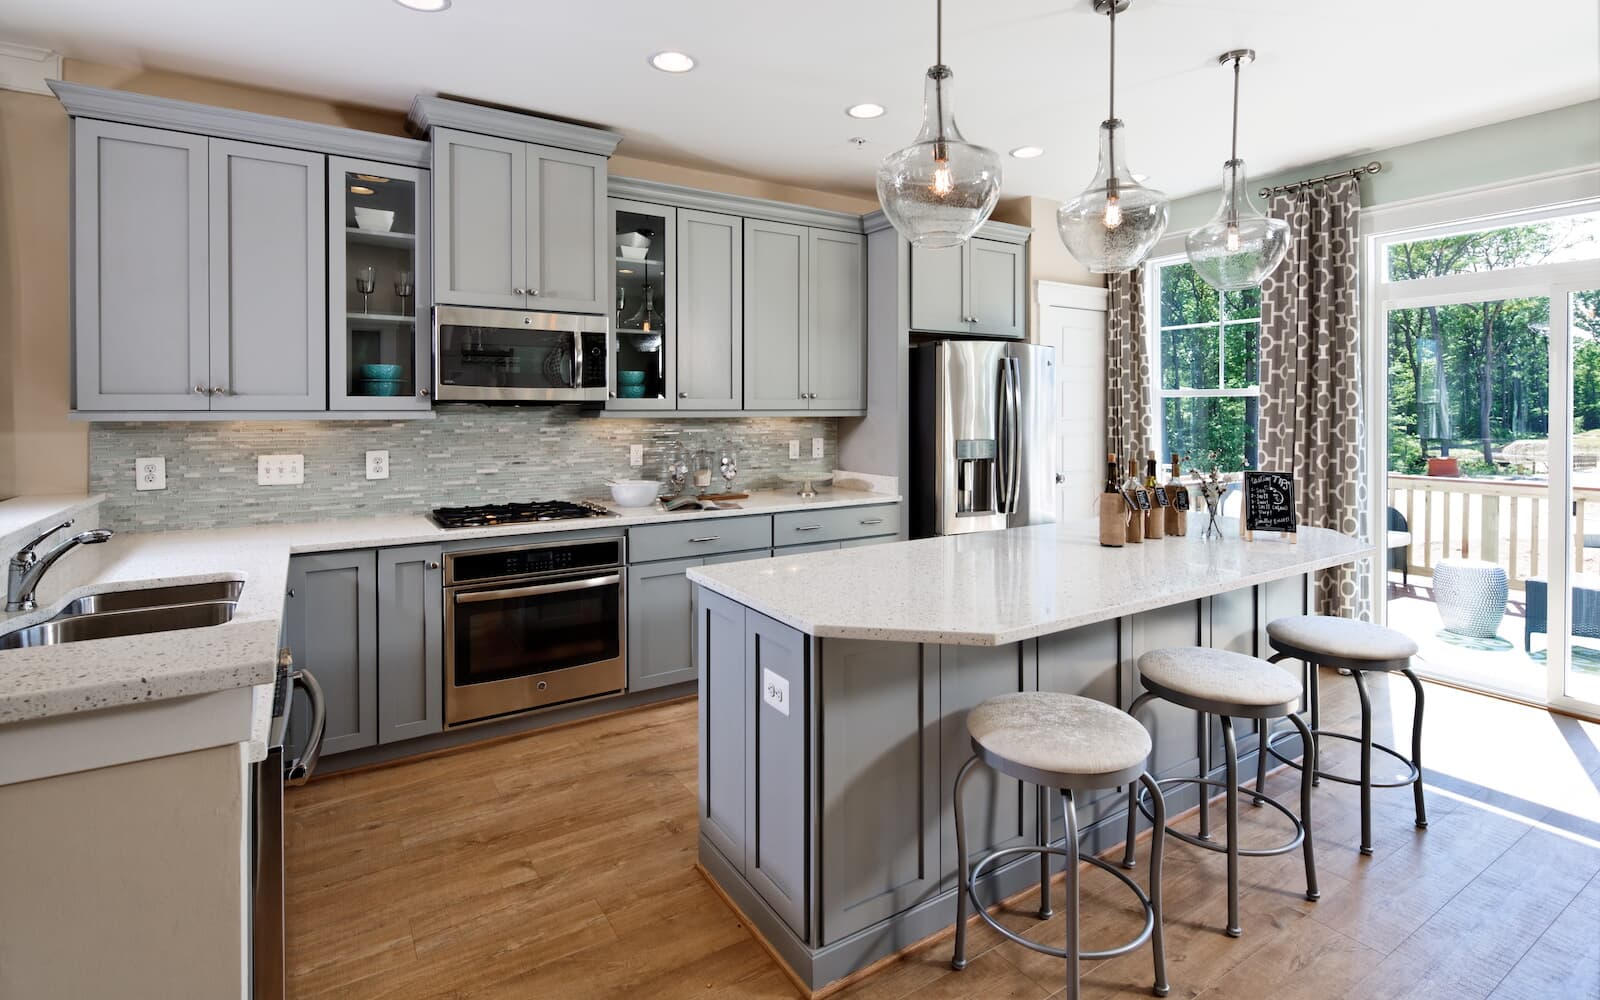 CamdenII-kitchen3-townhomes-north-potomac-md-travilah-station-brookfield-residential